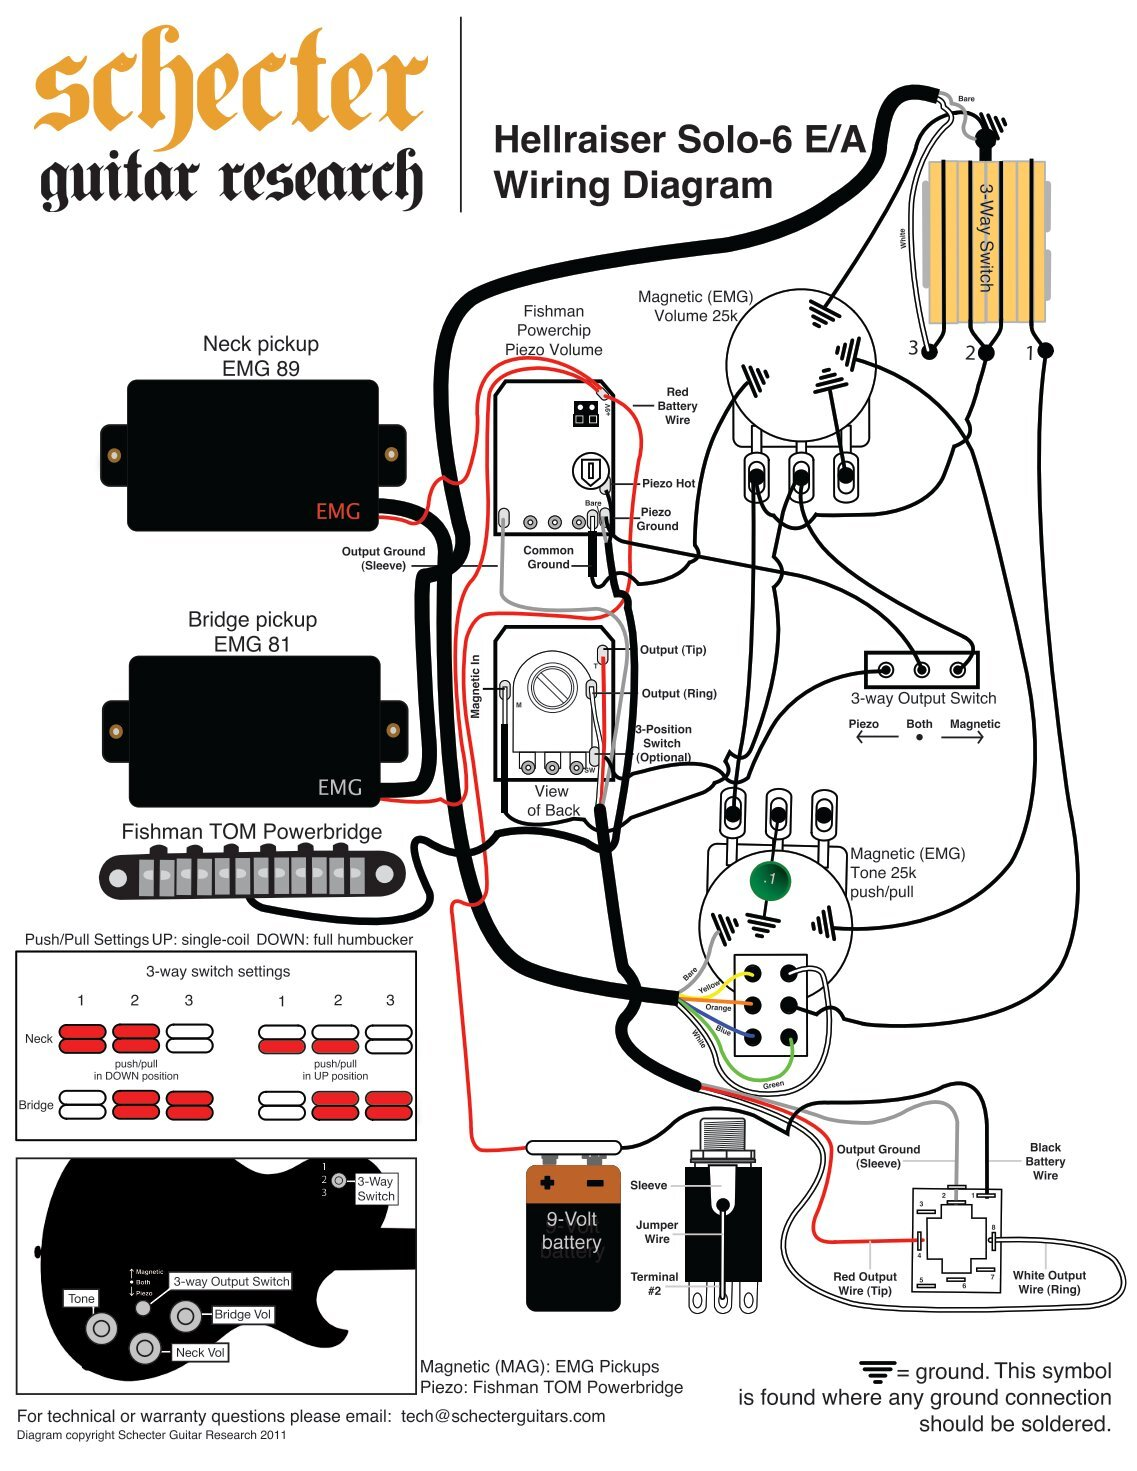 hellraiser solo 6 wiring diagram schecter guitars?resize\\\\\\\\\\\\\\\\\\\\\\\\\\\\\\\\\\\\\\\\\\\\\\\\\\\\\\\\\\\\\\\\\\\\\\\\\\\\\\\\\\\\\\\\\\\\\\\\\\\\\\\\\\\\\\\\\\\\\\\\\\\\\\\=665%2C860\\\\\\\\\\\\\\\\\\\\\\\\\\\\\\\\\\\\\\\\\\\\\\\\\\\\\\\\\\\\\\\\\\\\\\\\\\\\\\\\\\\\\\\\\\\\\\\\\\\\\\\\\\\\\\\\\\\\\\\\\\\\\\\&ssl\\\\\\\\\\\\\\\\\\\\\\\\\\\\\\\\\\\\\\\\\\\\\\\\\\\\\\\\\\\\\\\\\\\\\\\\\\\\\\\\\\\\\\\\\\\\\\\\\\\\\\\\\\\\\\\\\\\\\\\\\\\\\\\=1 outstanding zakk wylde emg wiring diagram pictures wiring emg wiring schematics at nearapp.co